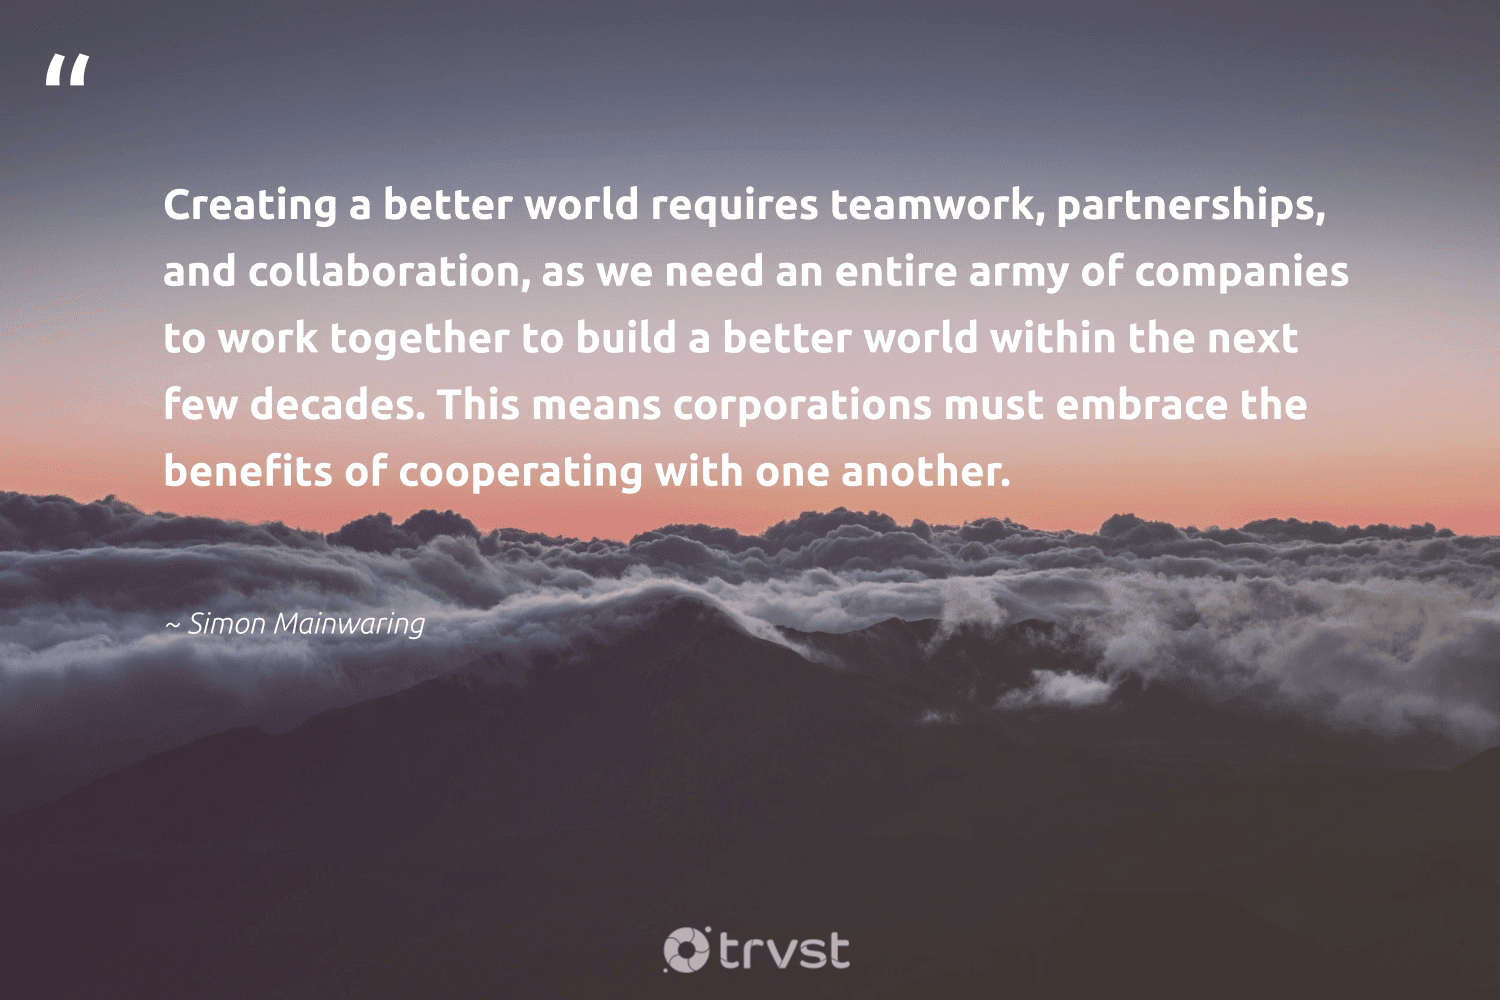 """""""Creating a better world requires teamwork, partnerships, and collaboration, as we need an entire army of companies to work together to build a better world within the next few decades. This means corporations must embrace the benefits of cooperating with one another.""""  - Simon Mainwaring #trvst #quotes #futureofwork #dosomething #begreat #bethechange #softskills #takeaction #nevergiveup #dotherightthing #beinspired #collectiveaction"""